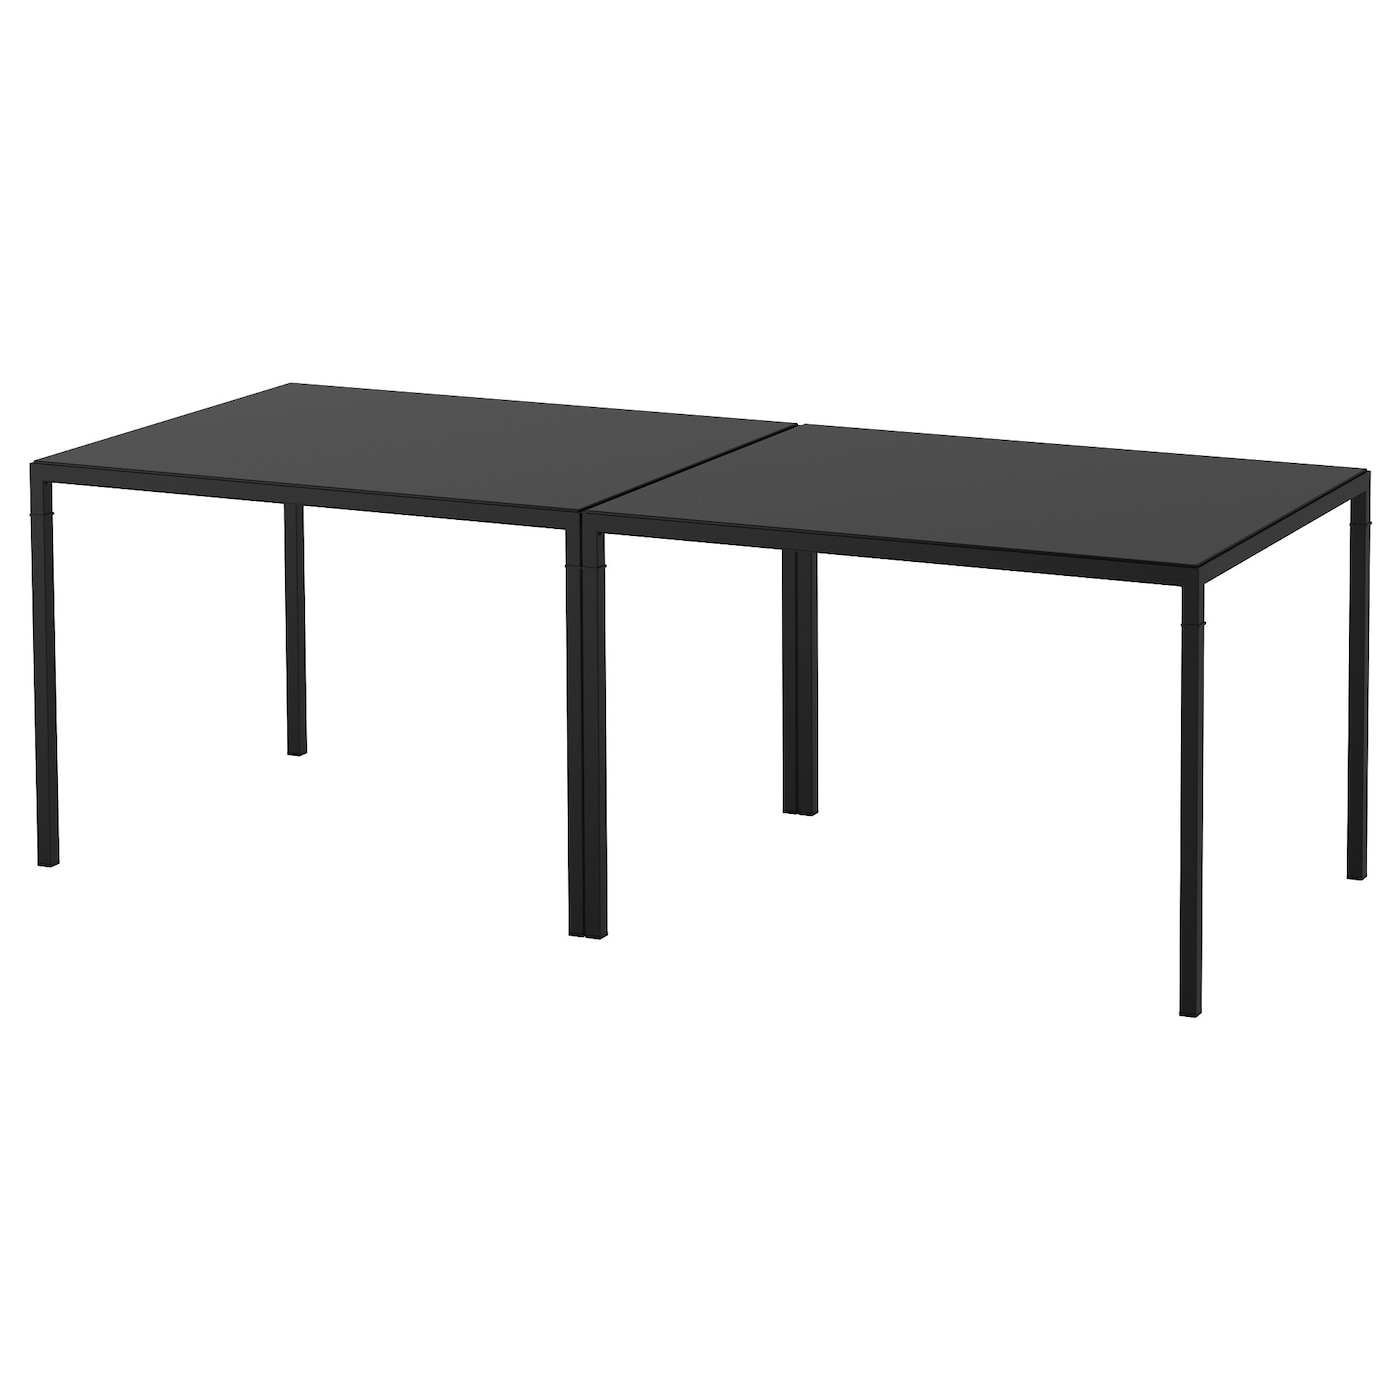 nyboda table basse avec plateau r versible noir beige. Black Bedroom Furniture Sets. Home Design Ideas